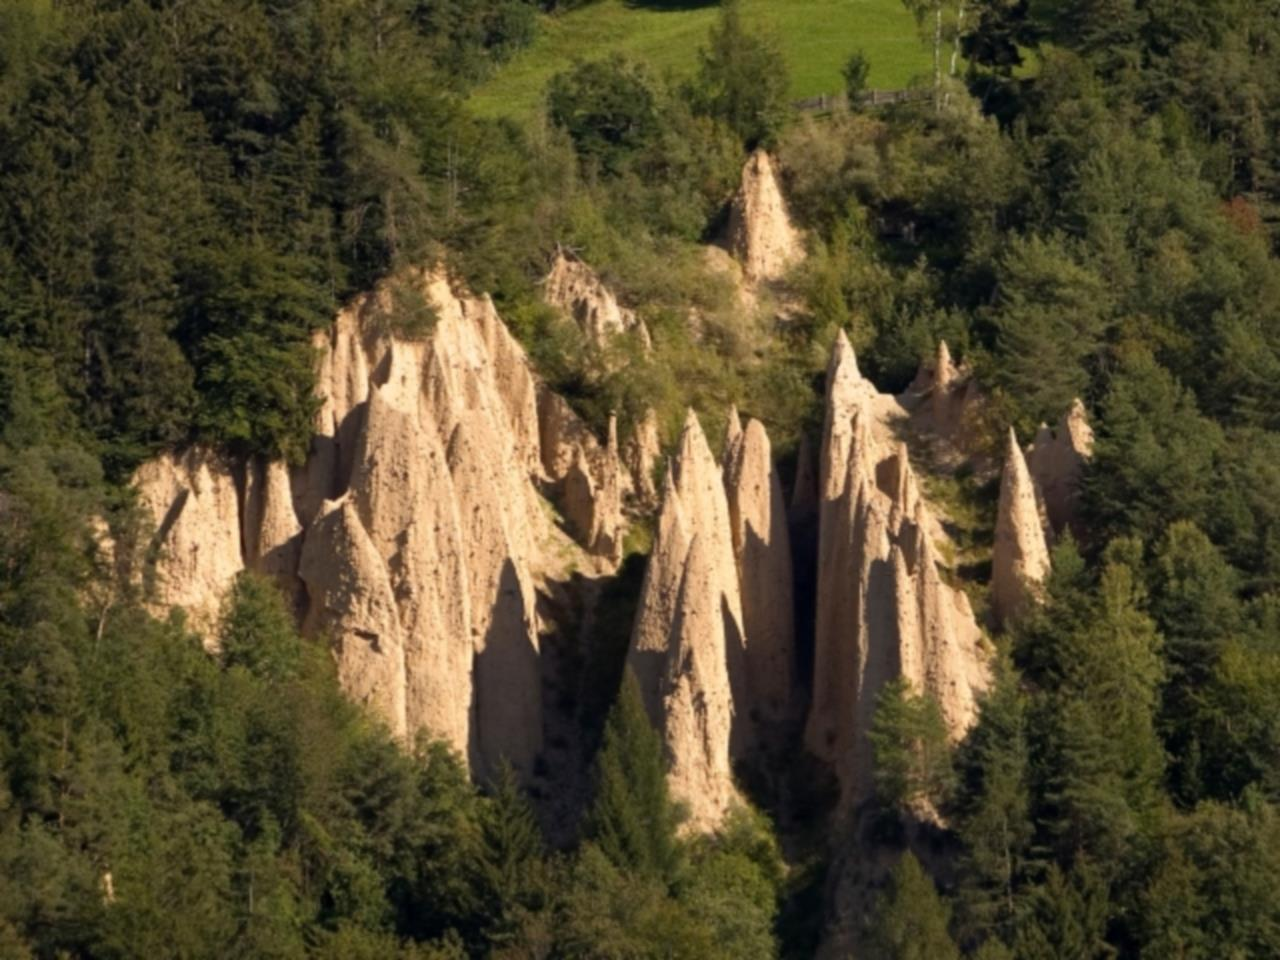 Earth pyramids of Collepietra